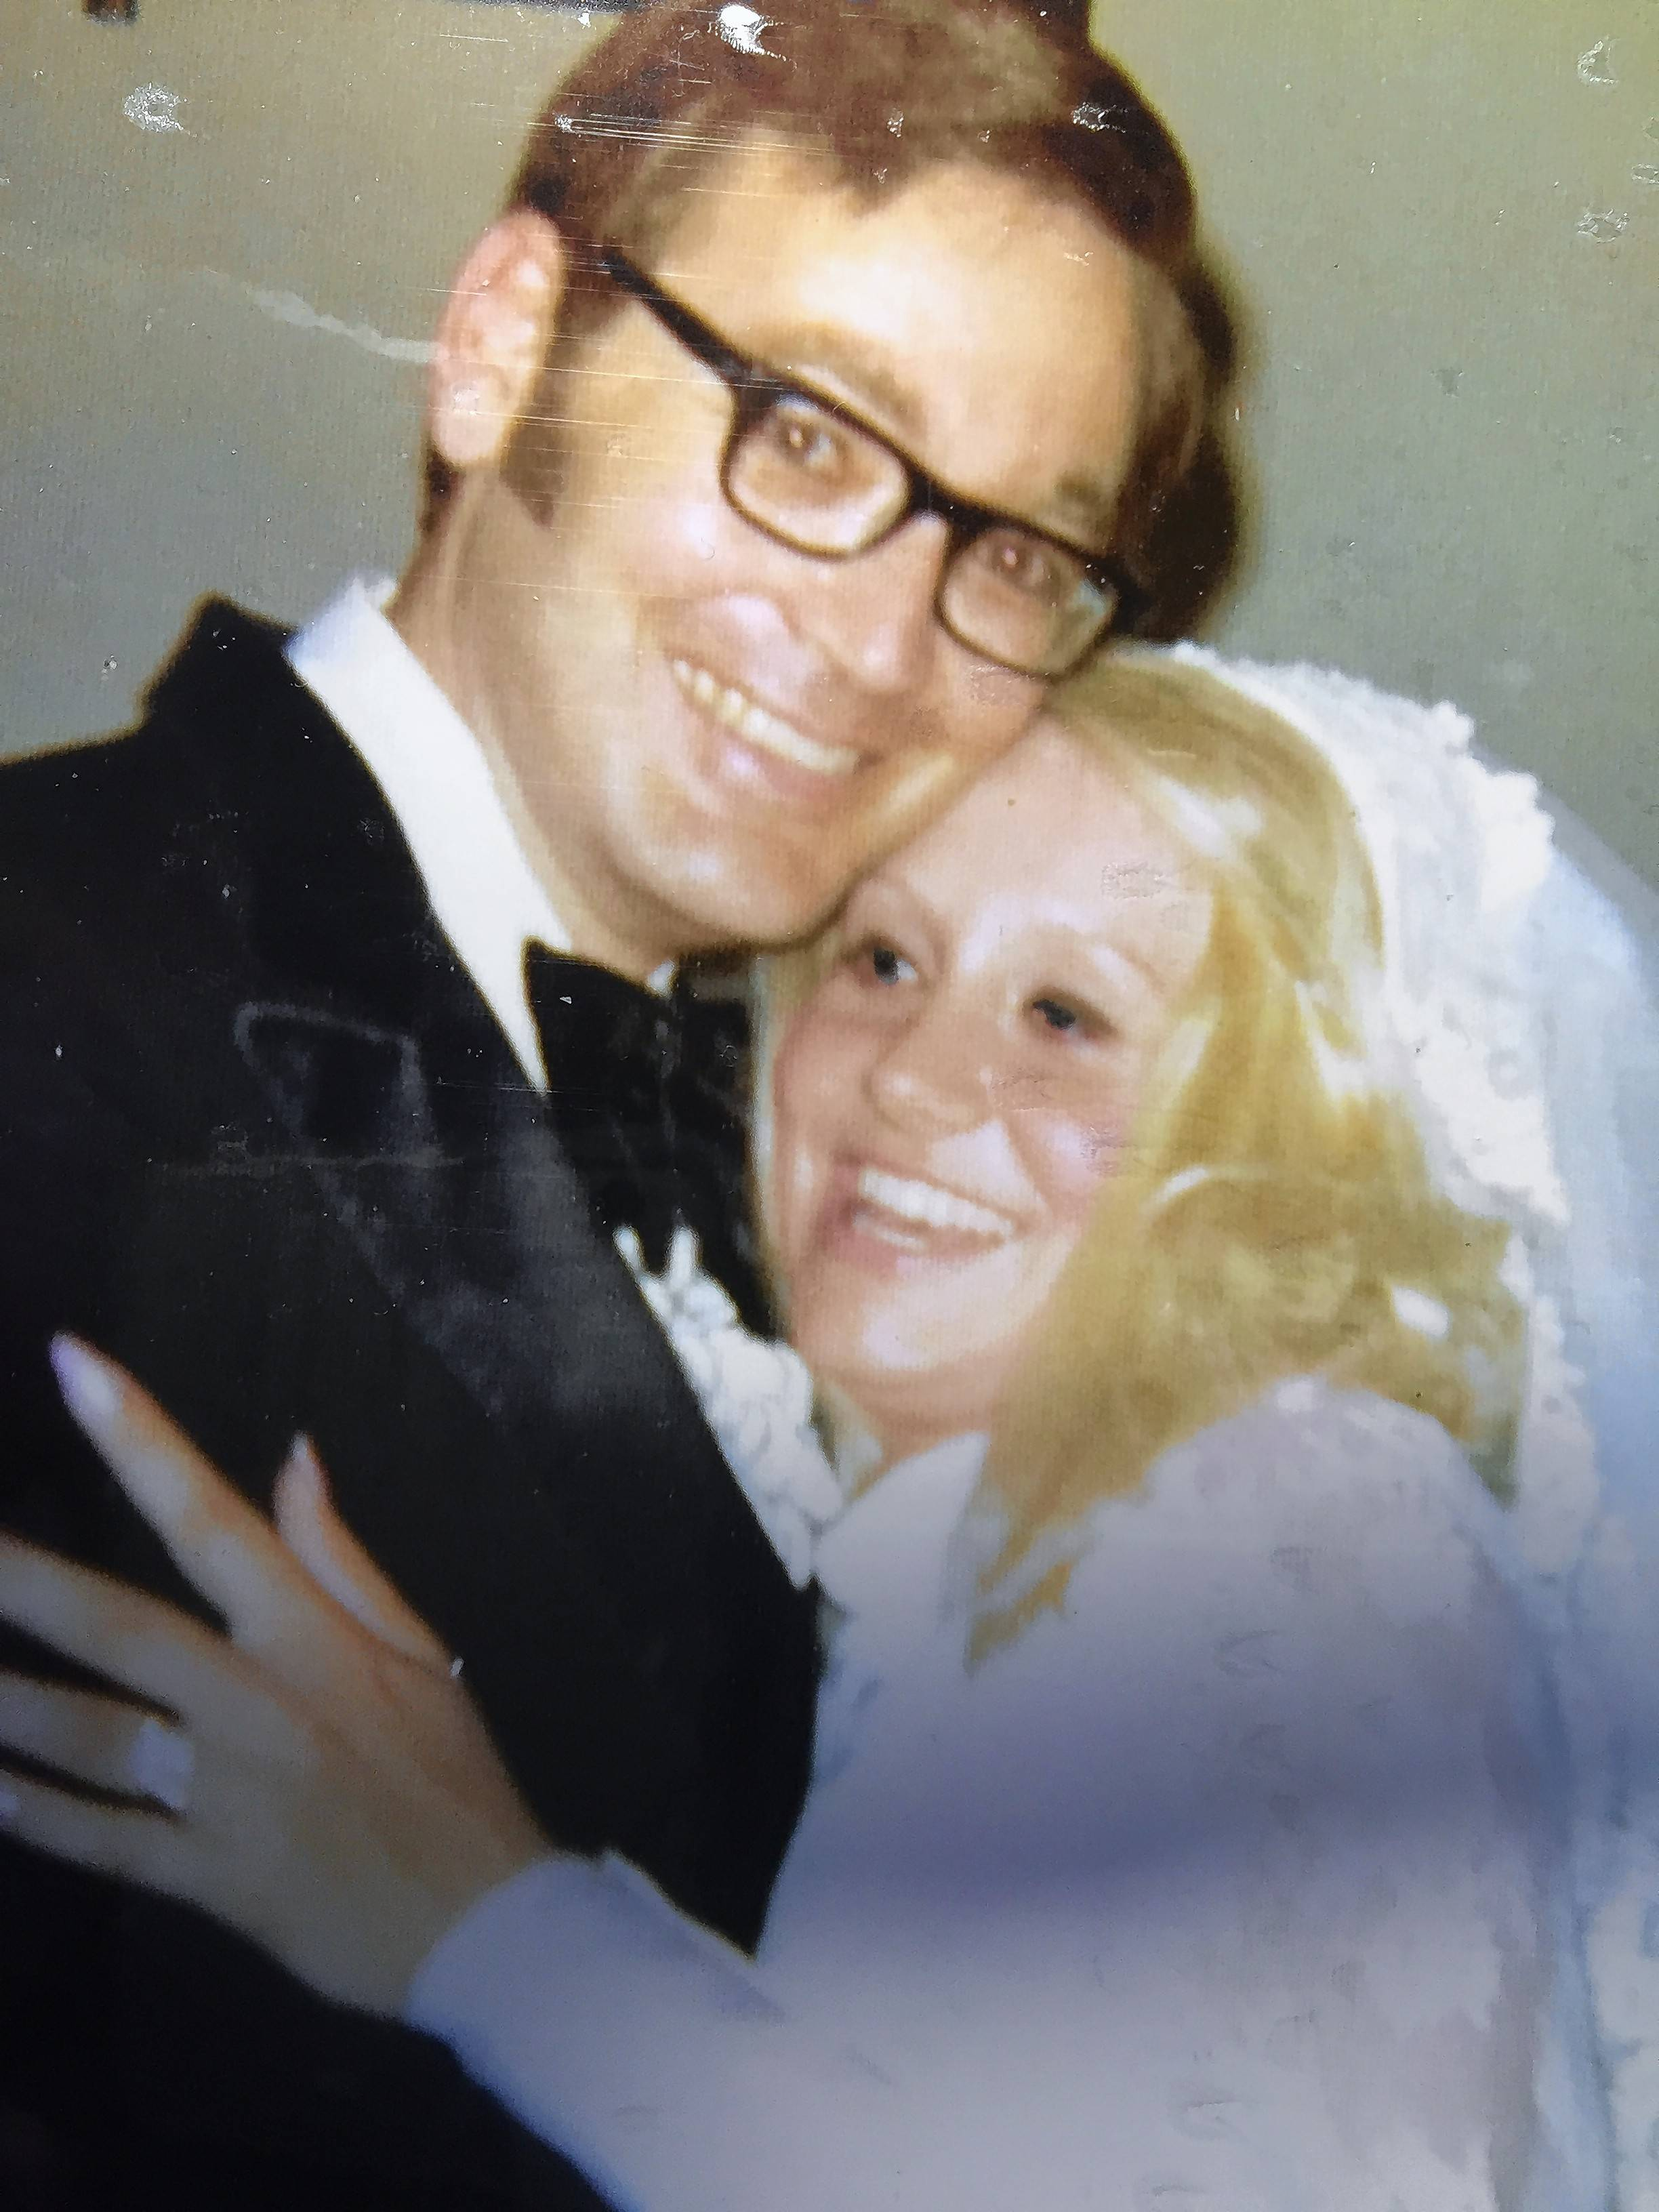 Less than a month after Donnie Rudd and Noreen Kumeta wed in 1973, Noreen was killed in a one car crash in Barrington Township. Forty years later, a medical examiner reclassified her death as a homicide.